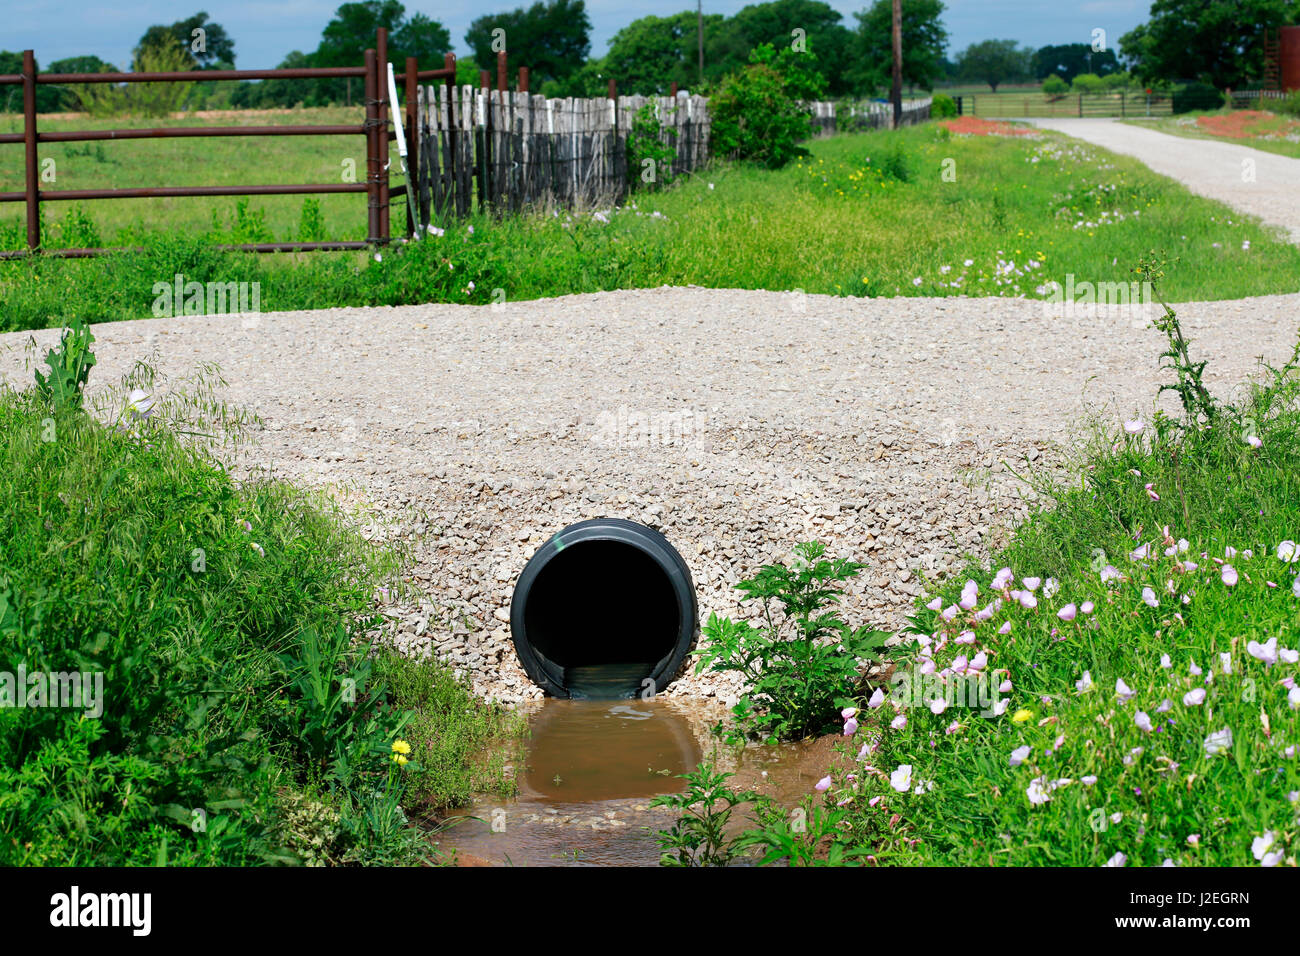 Culvert Pipe Stock Photos & Culvert Pipe Stock Images